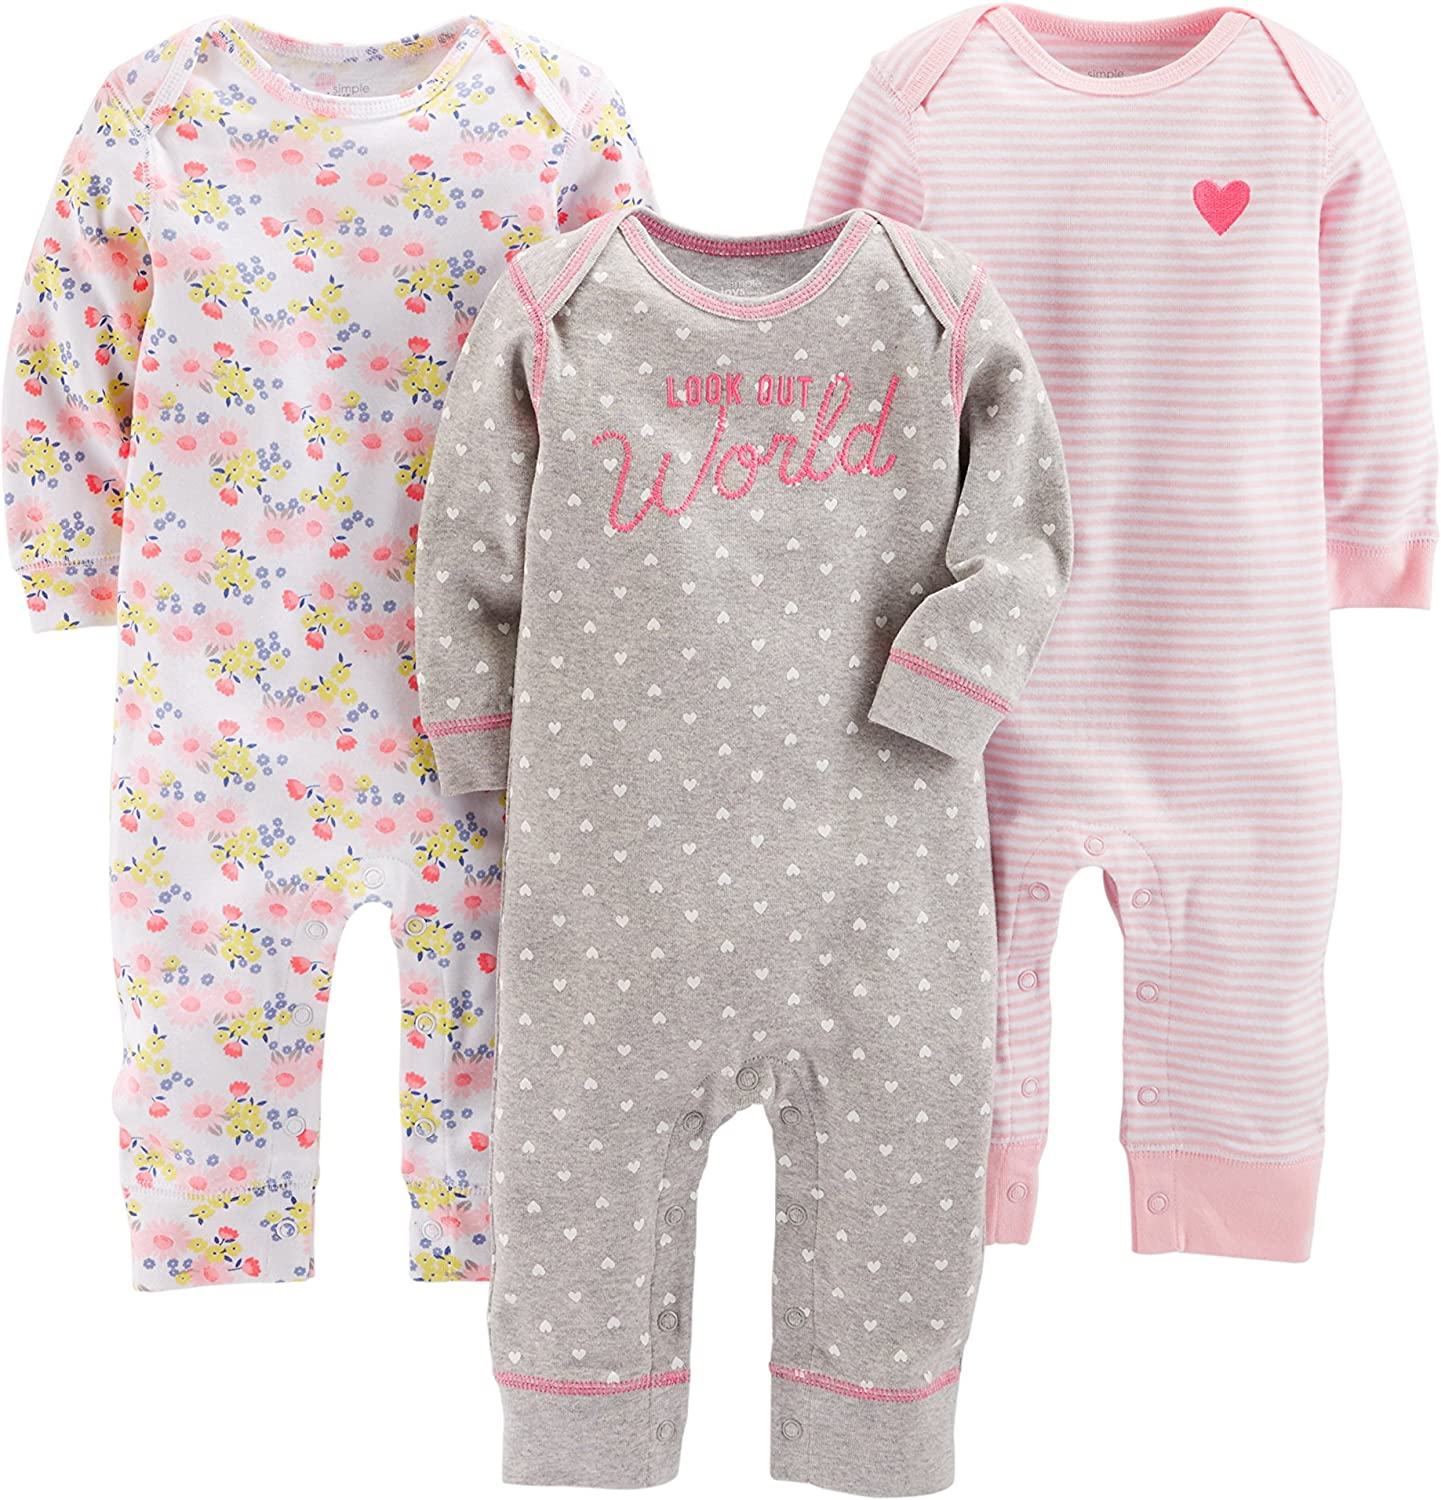 Simple Joys by Carters Baby-Girls 3-Pack Snap-up Rompers